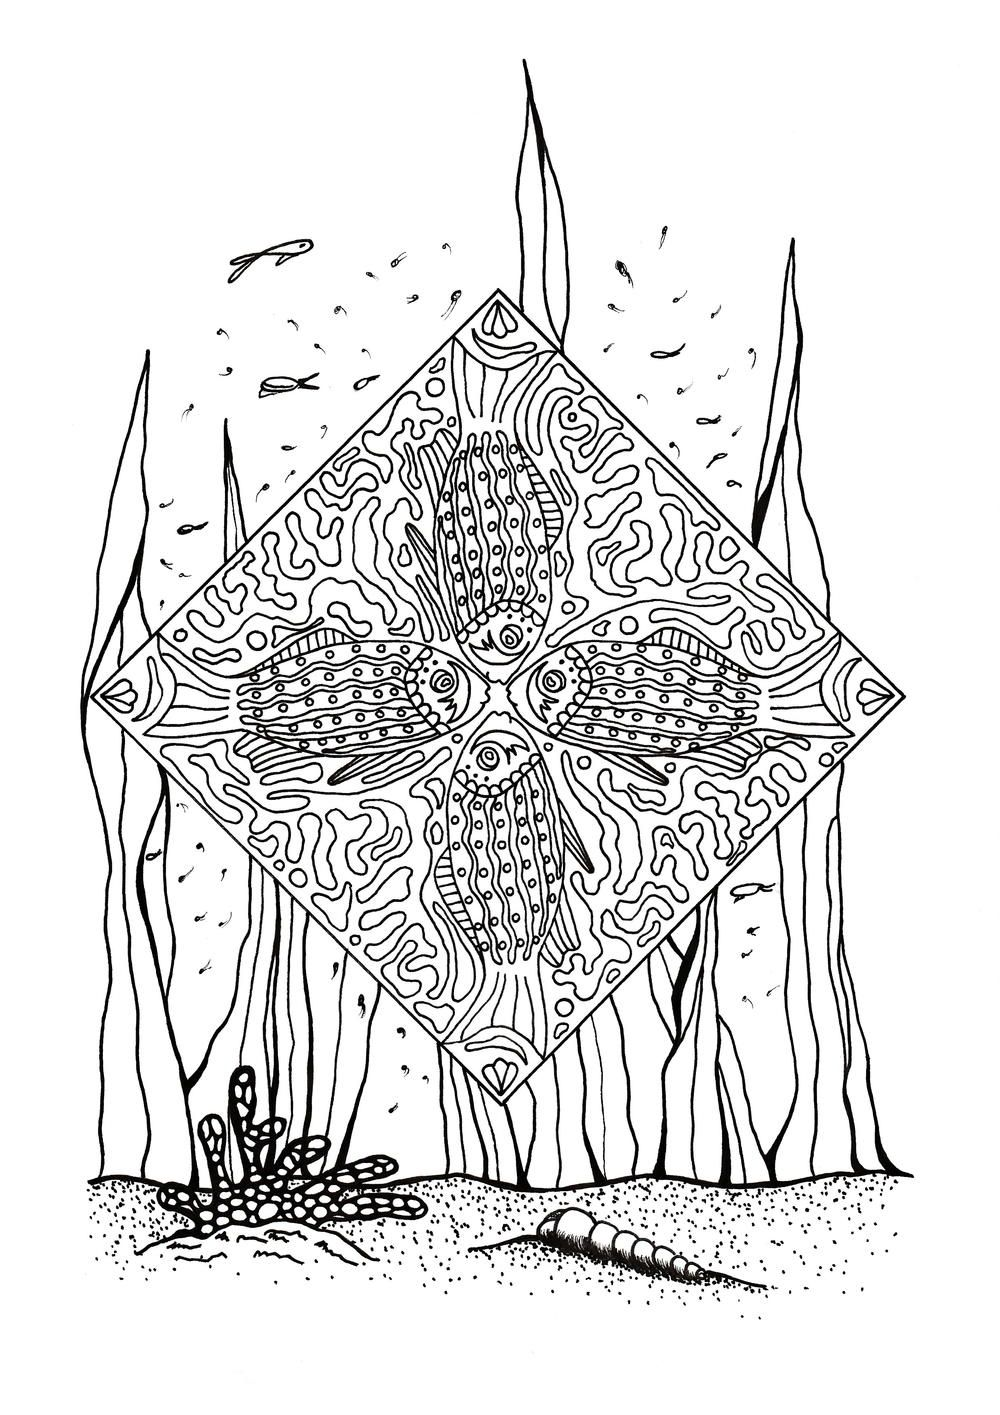 Coral Reef Slice of Life Adult Coloring Page | Free Adult Coloring ...